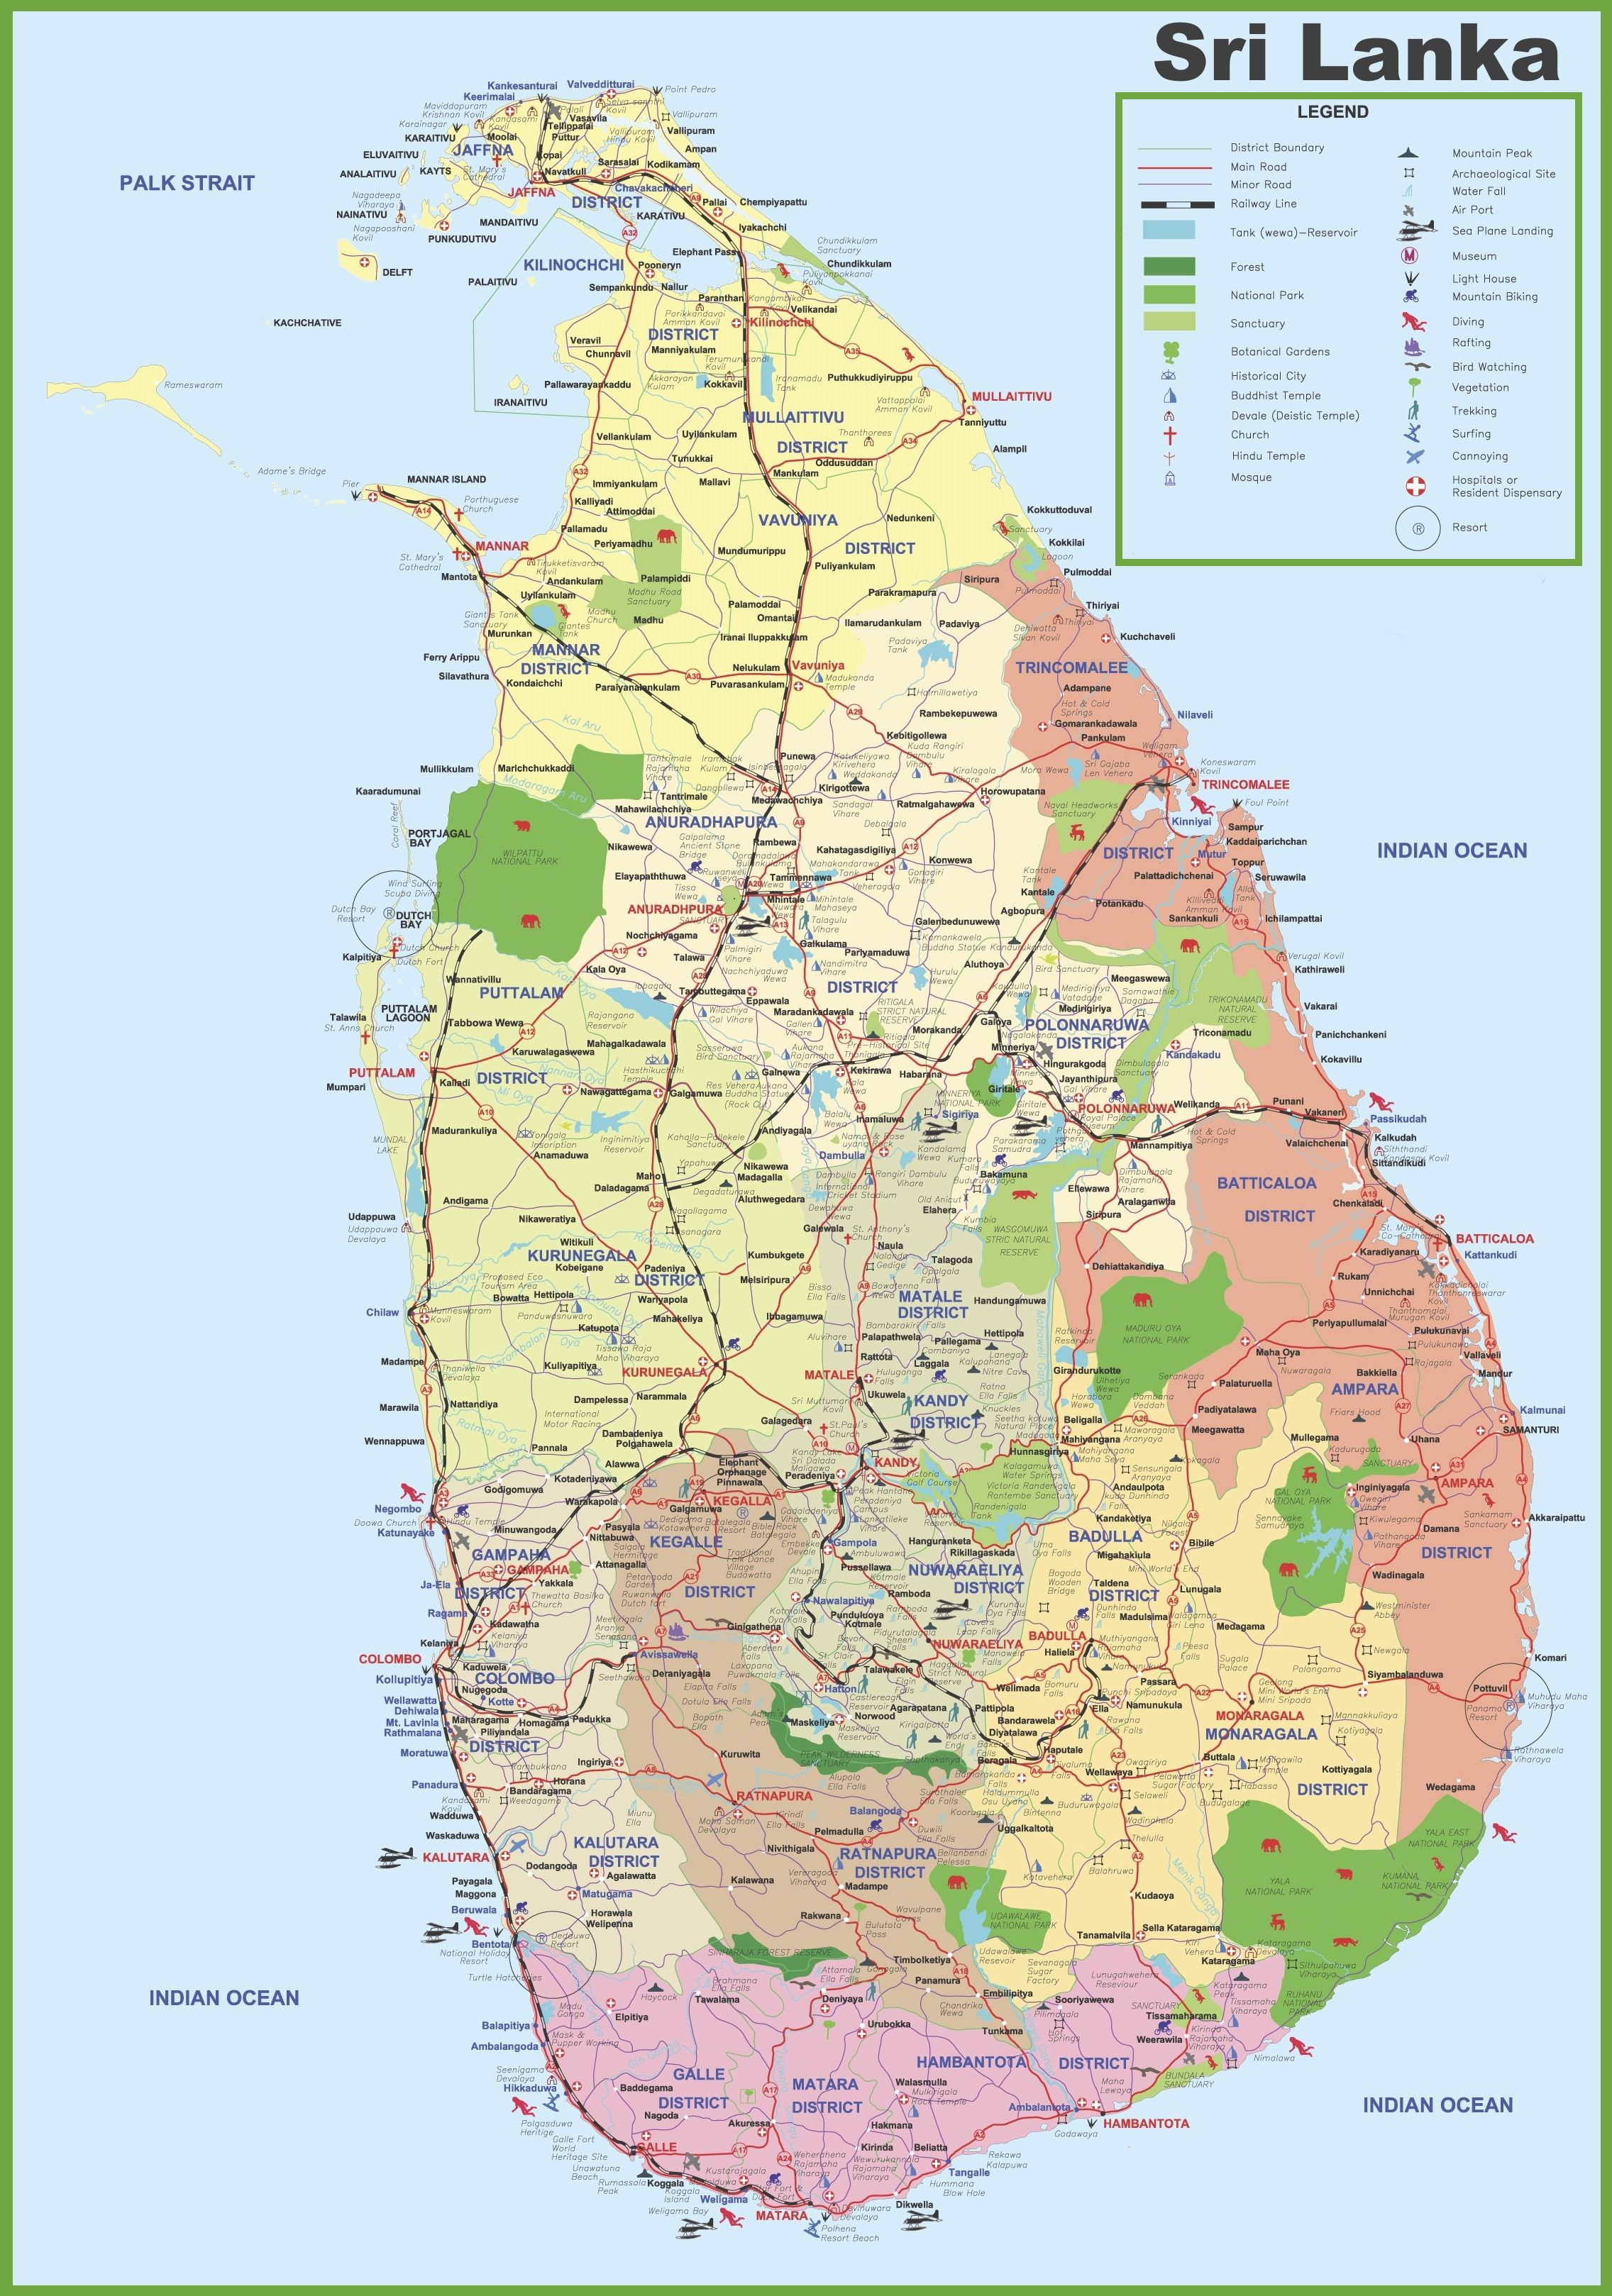 Map Of Asia Sri Lanka.Tourist Map Of Sri Lanka Maps In 2019 Tourist Map Sri Lanka Map